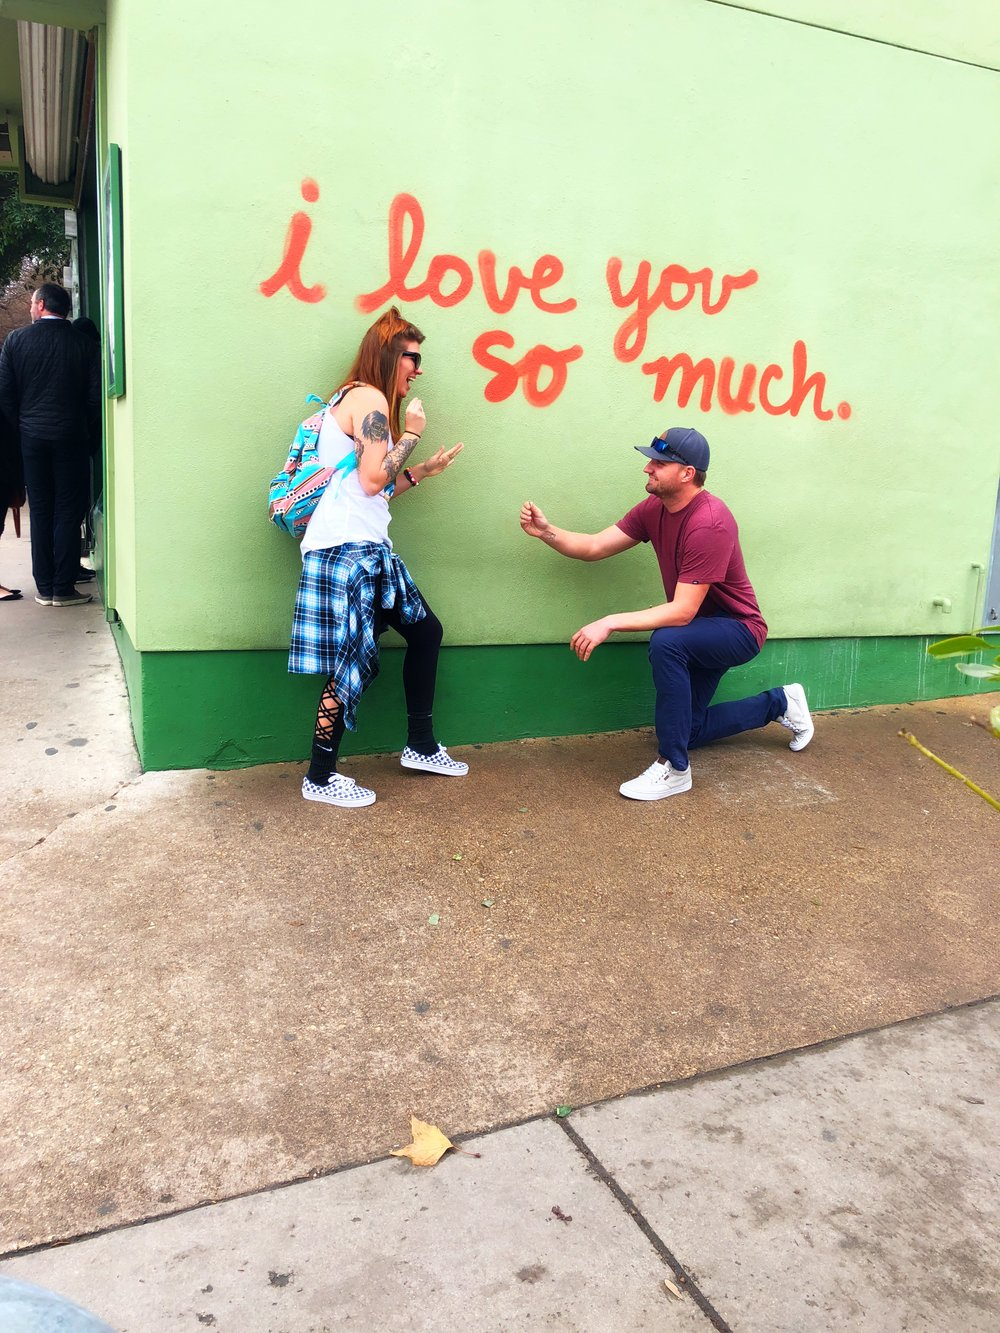 We even witnessed a proposal which was so cute and exciting! If you can't tell, she said yes :) -